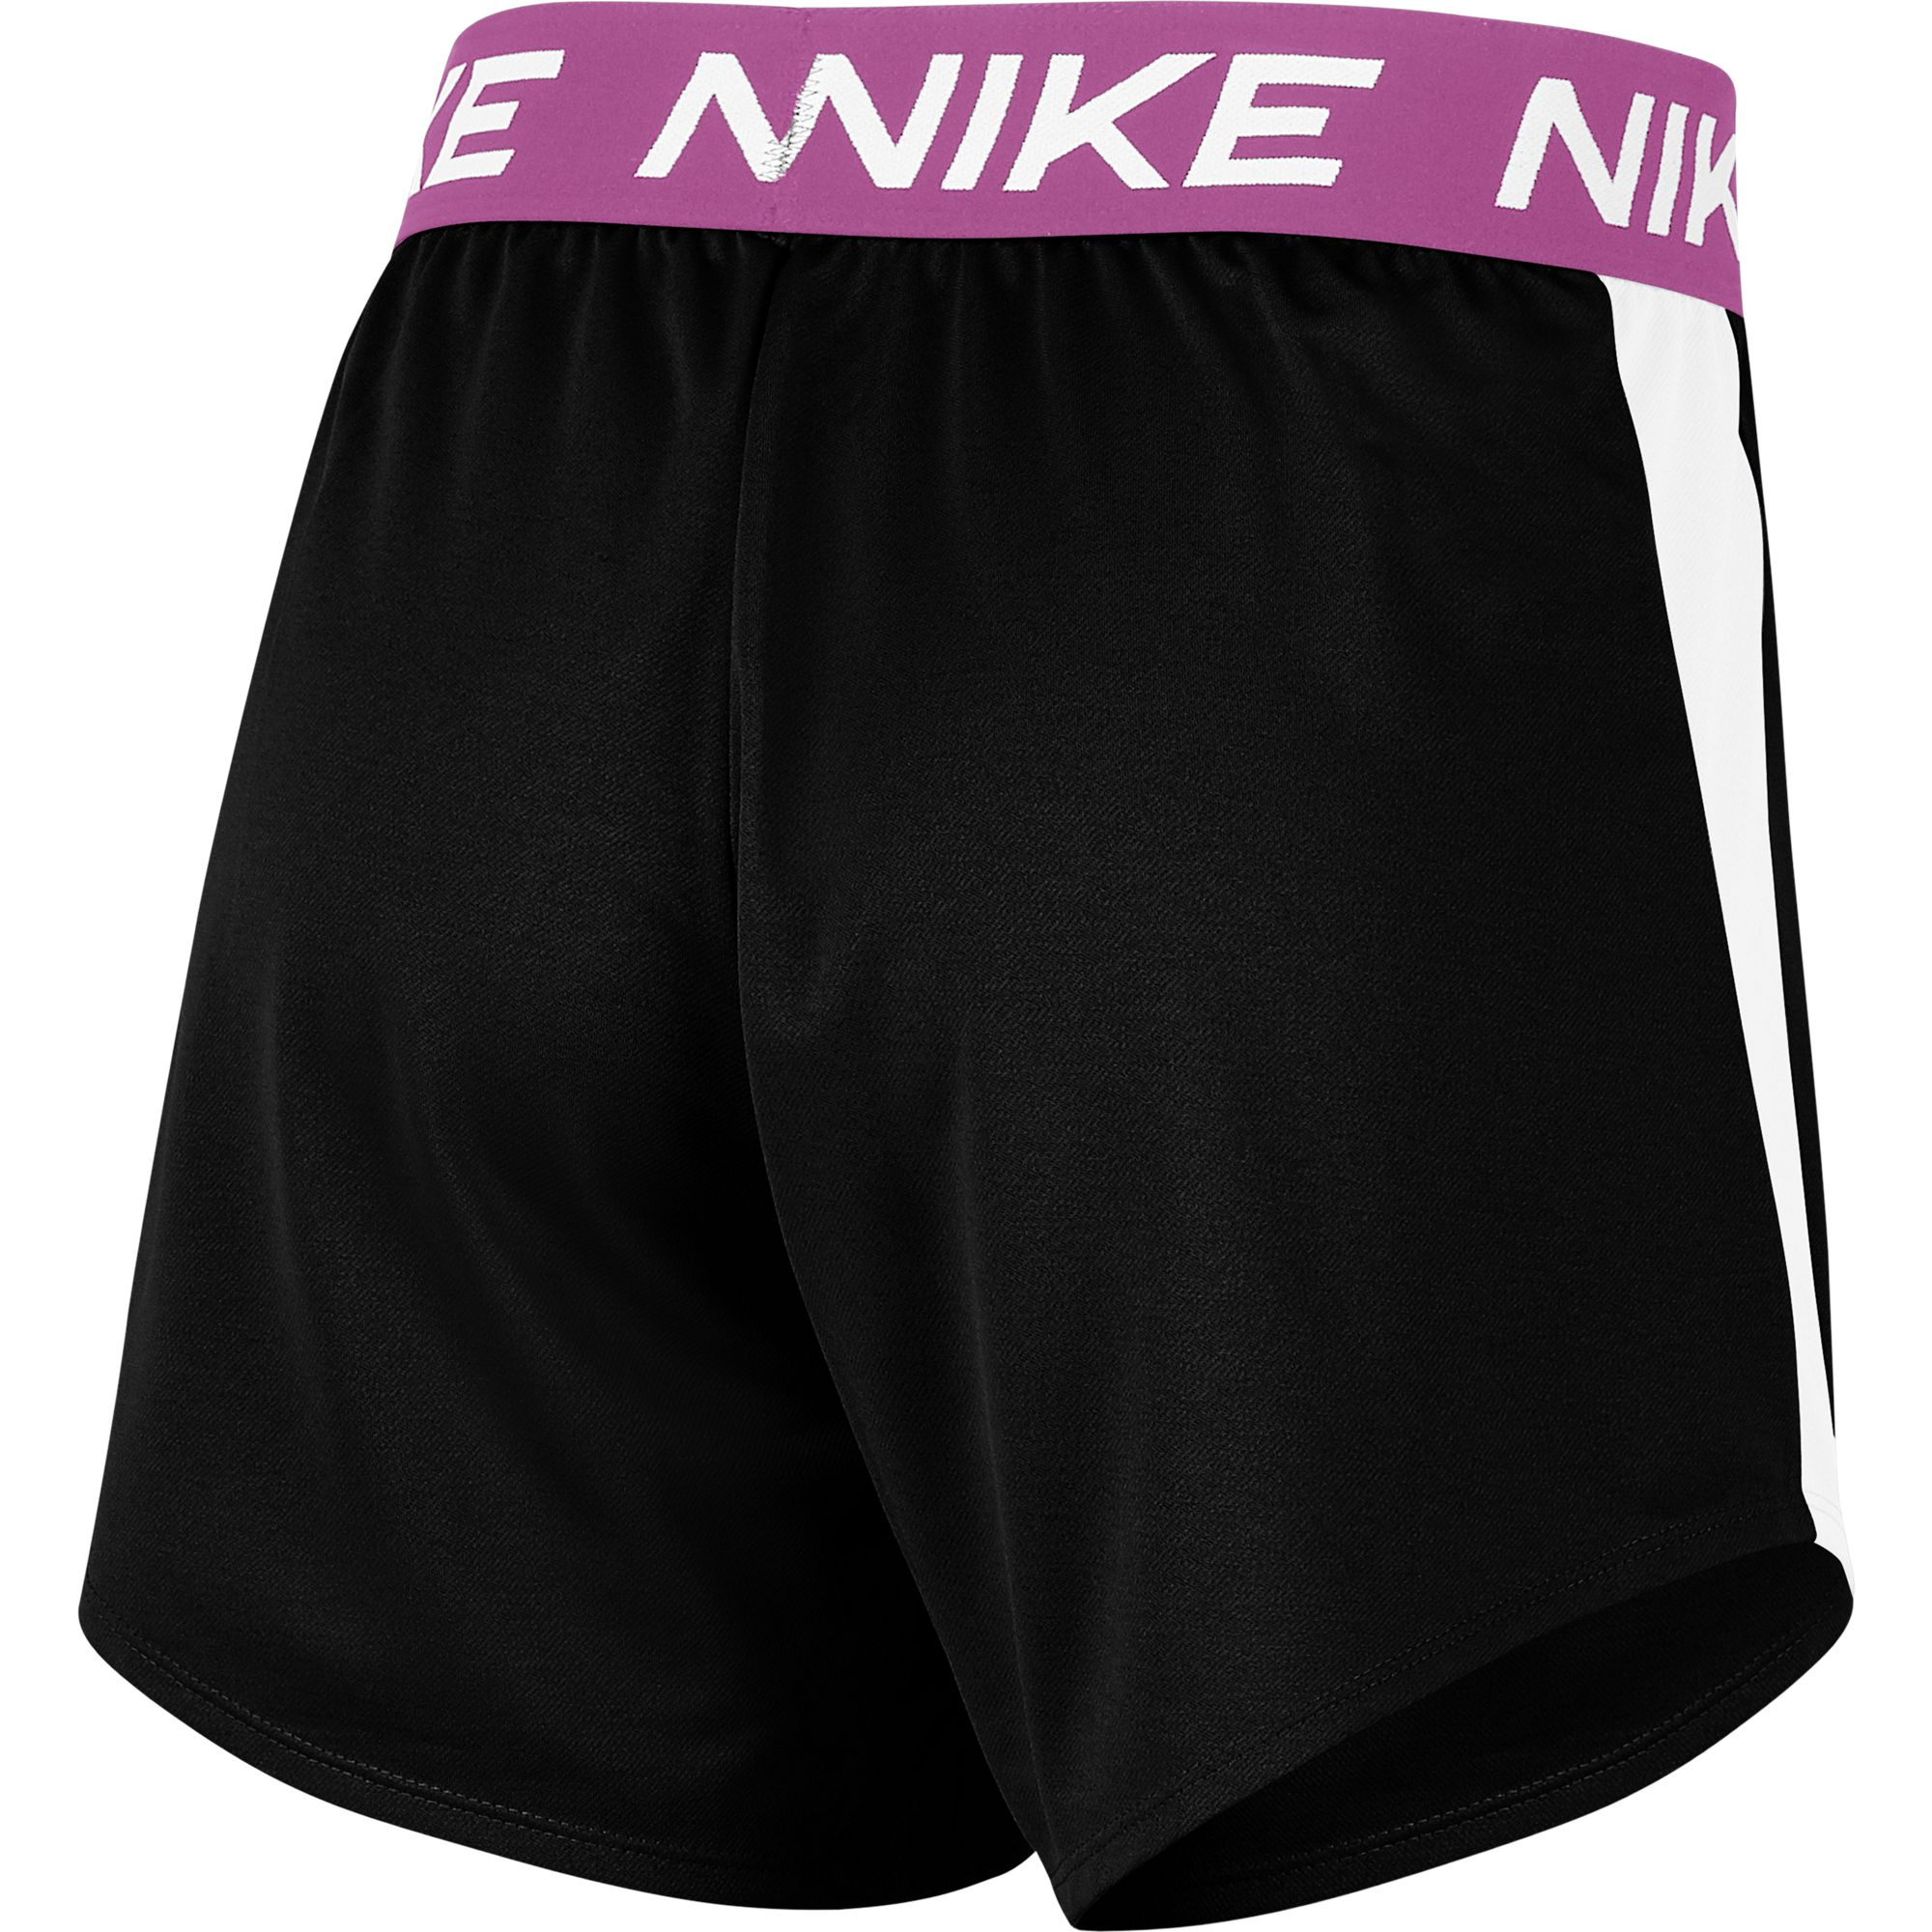 Women's Dri-Fit Attack Color Block Training Short, Black/Pink, swatch